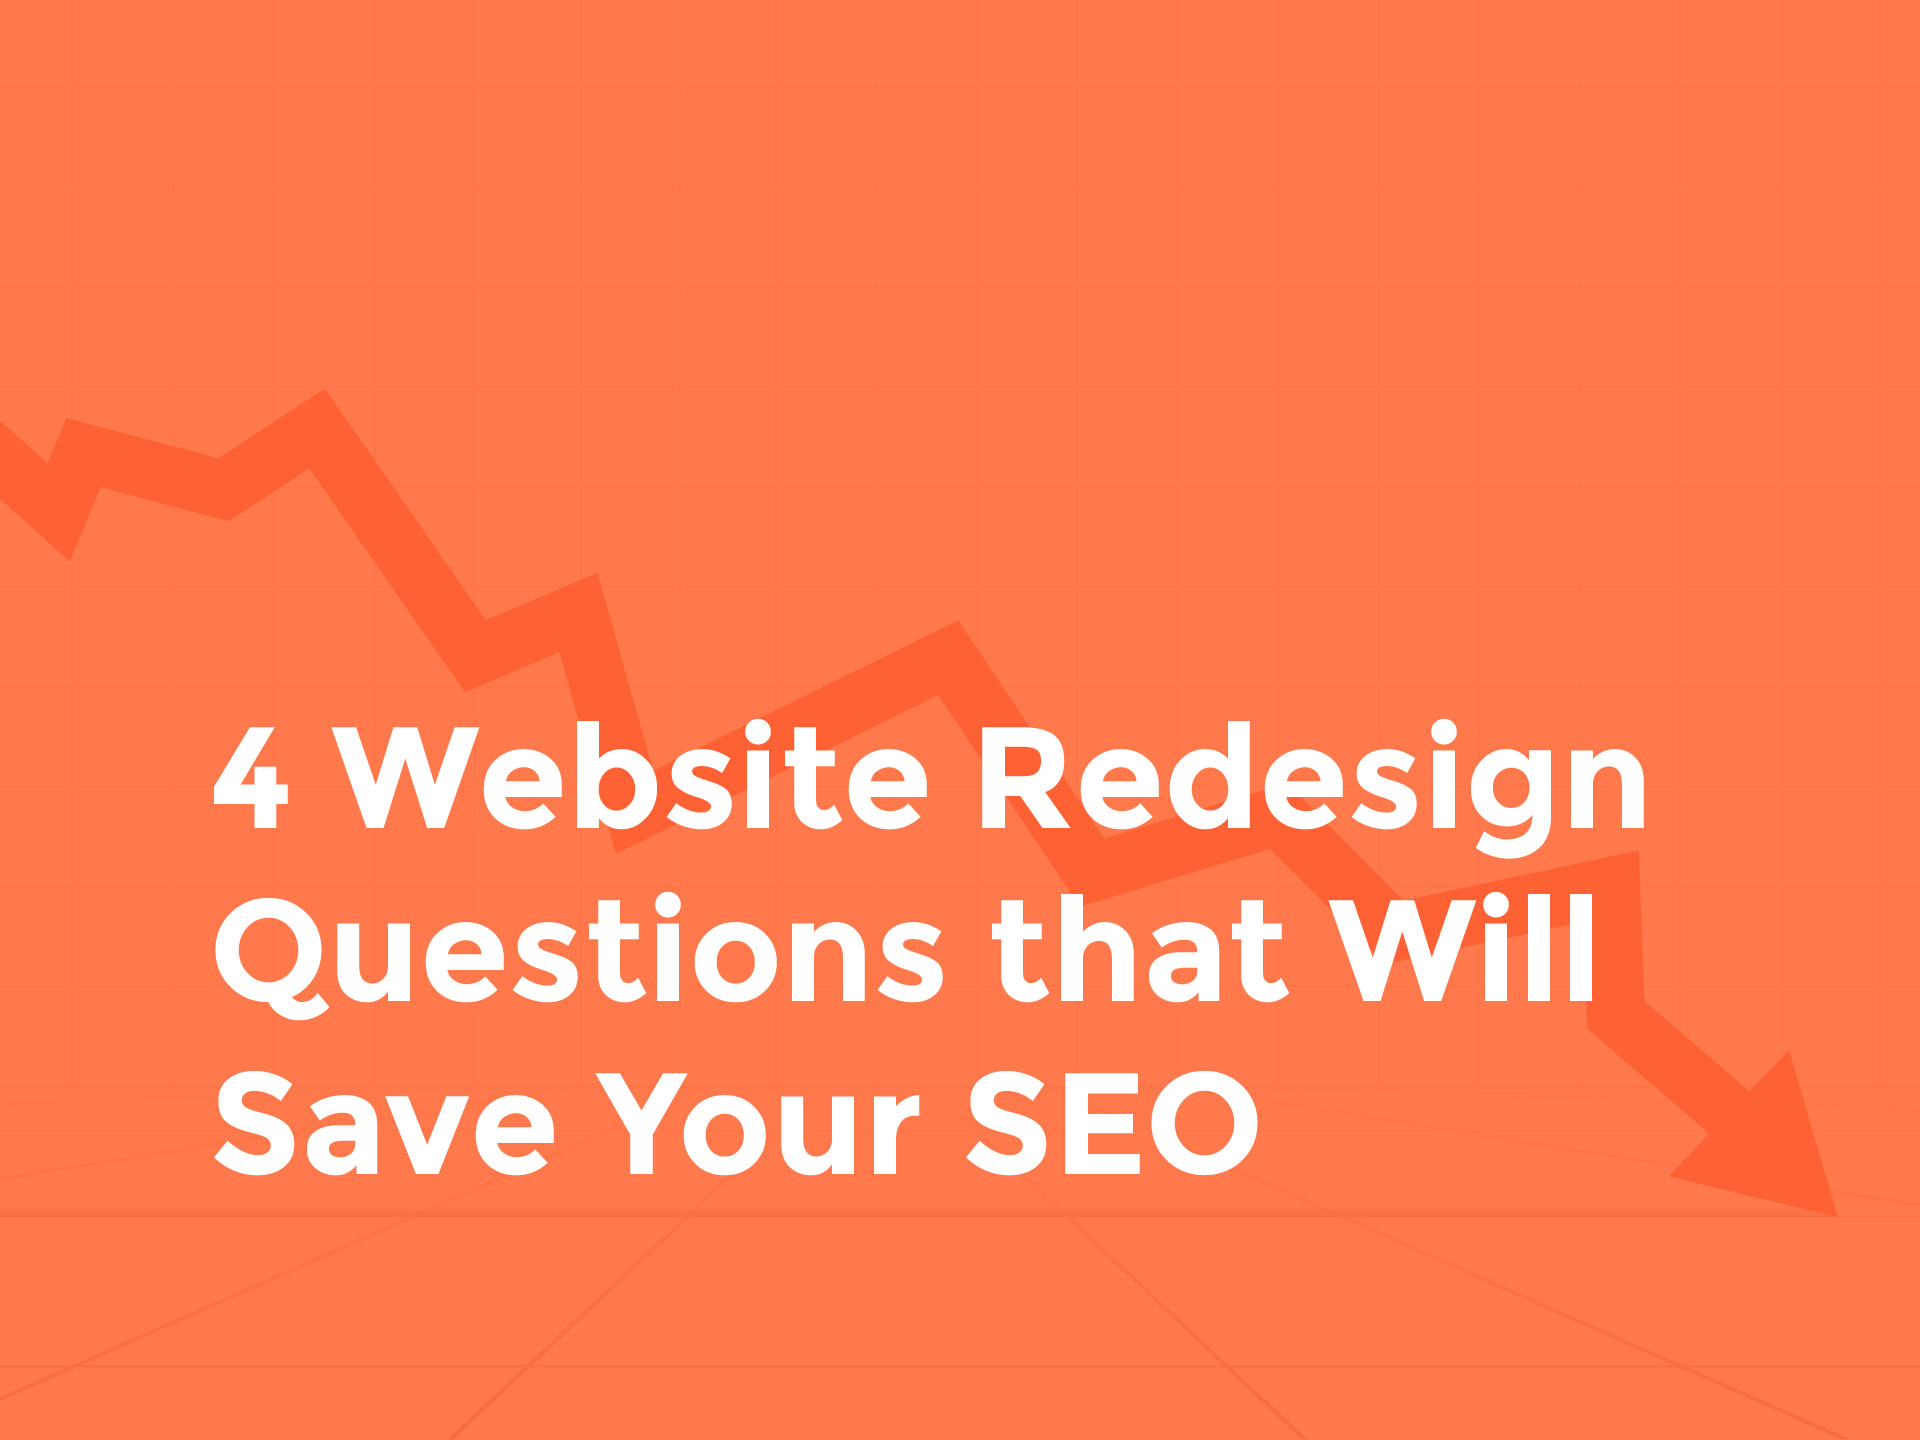 website redesign questions to ask to save your seo